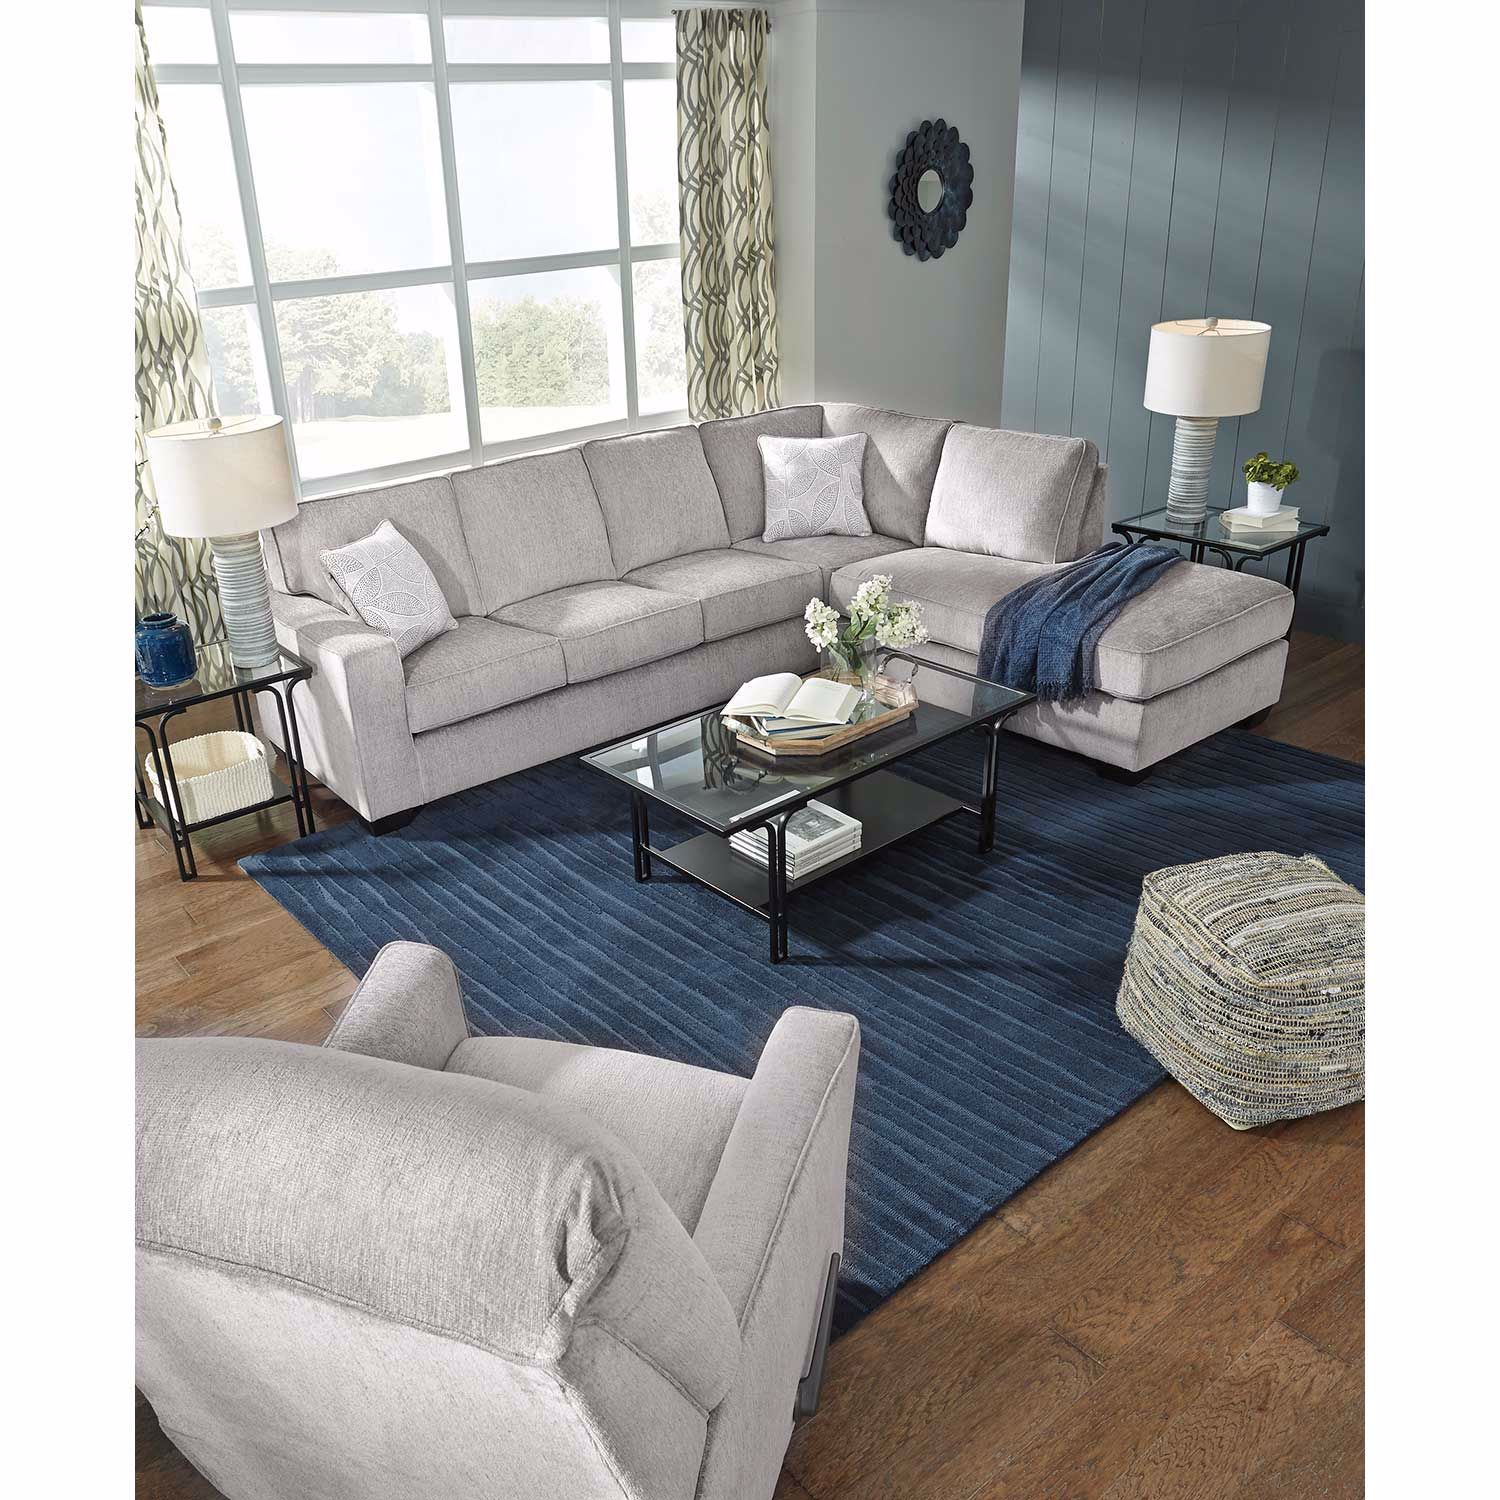 Picture of Altari Alloy 2 PC Sleeper Sectional with RAF Chaise